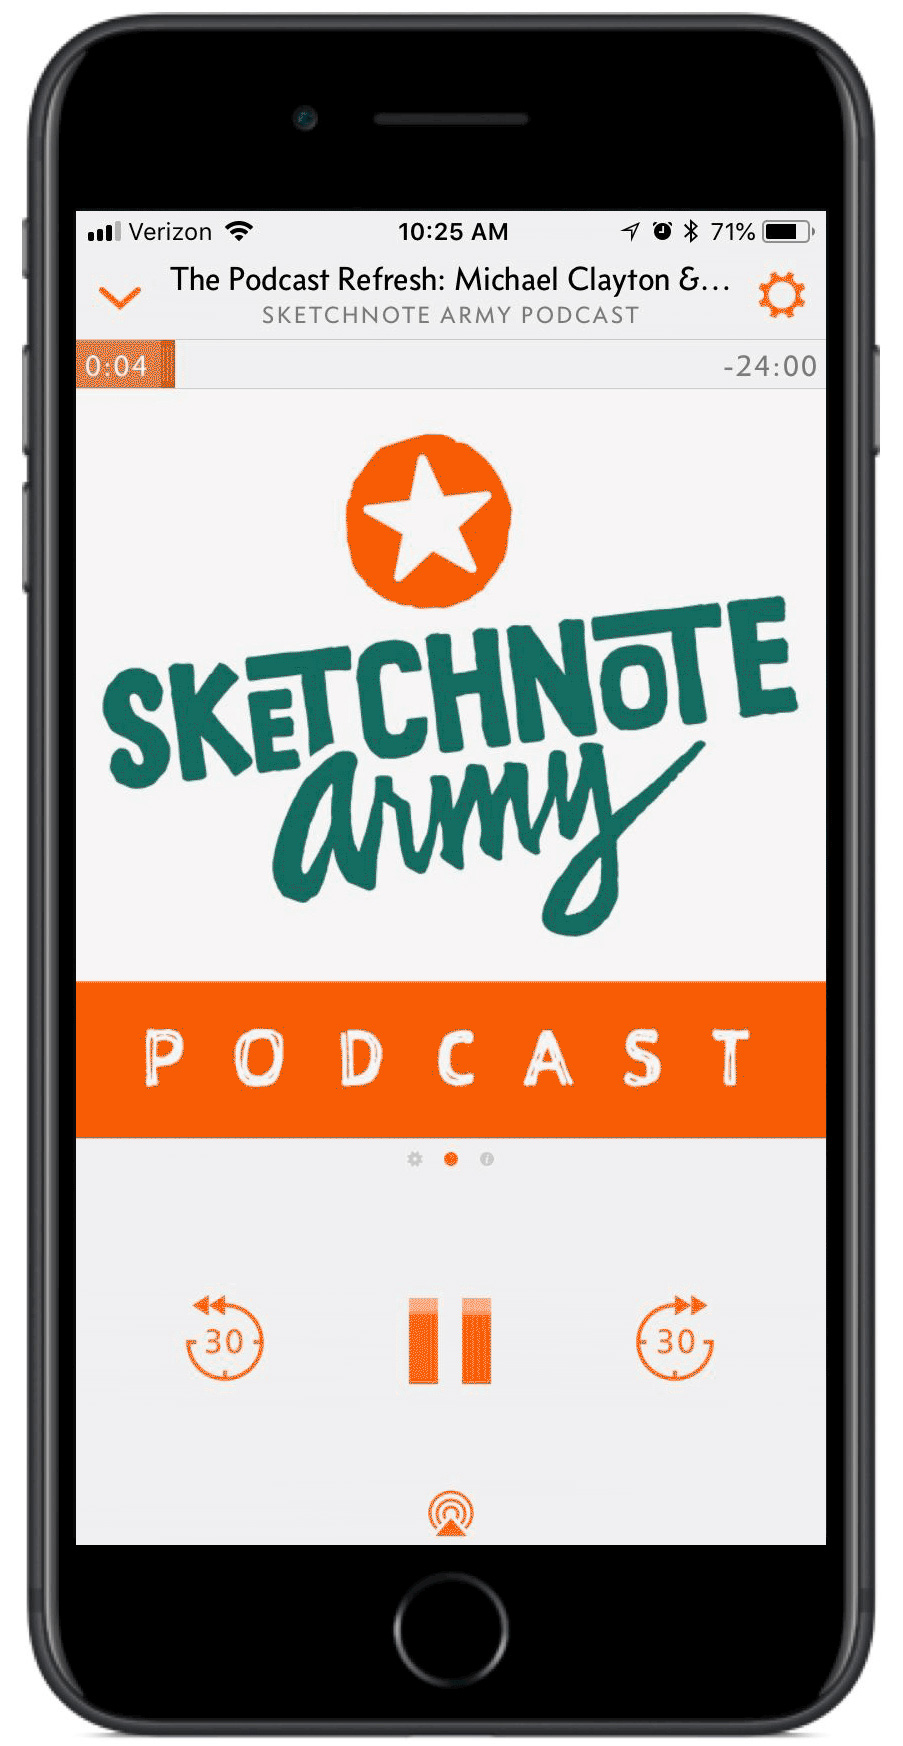 Sketchnote-Army-Podcast-Mobile.jpg